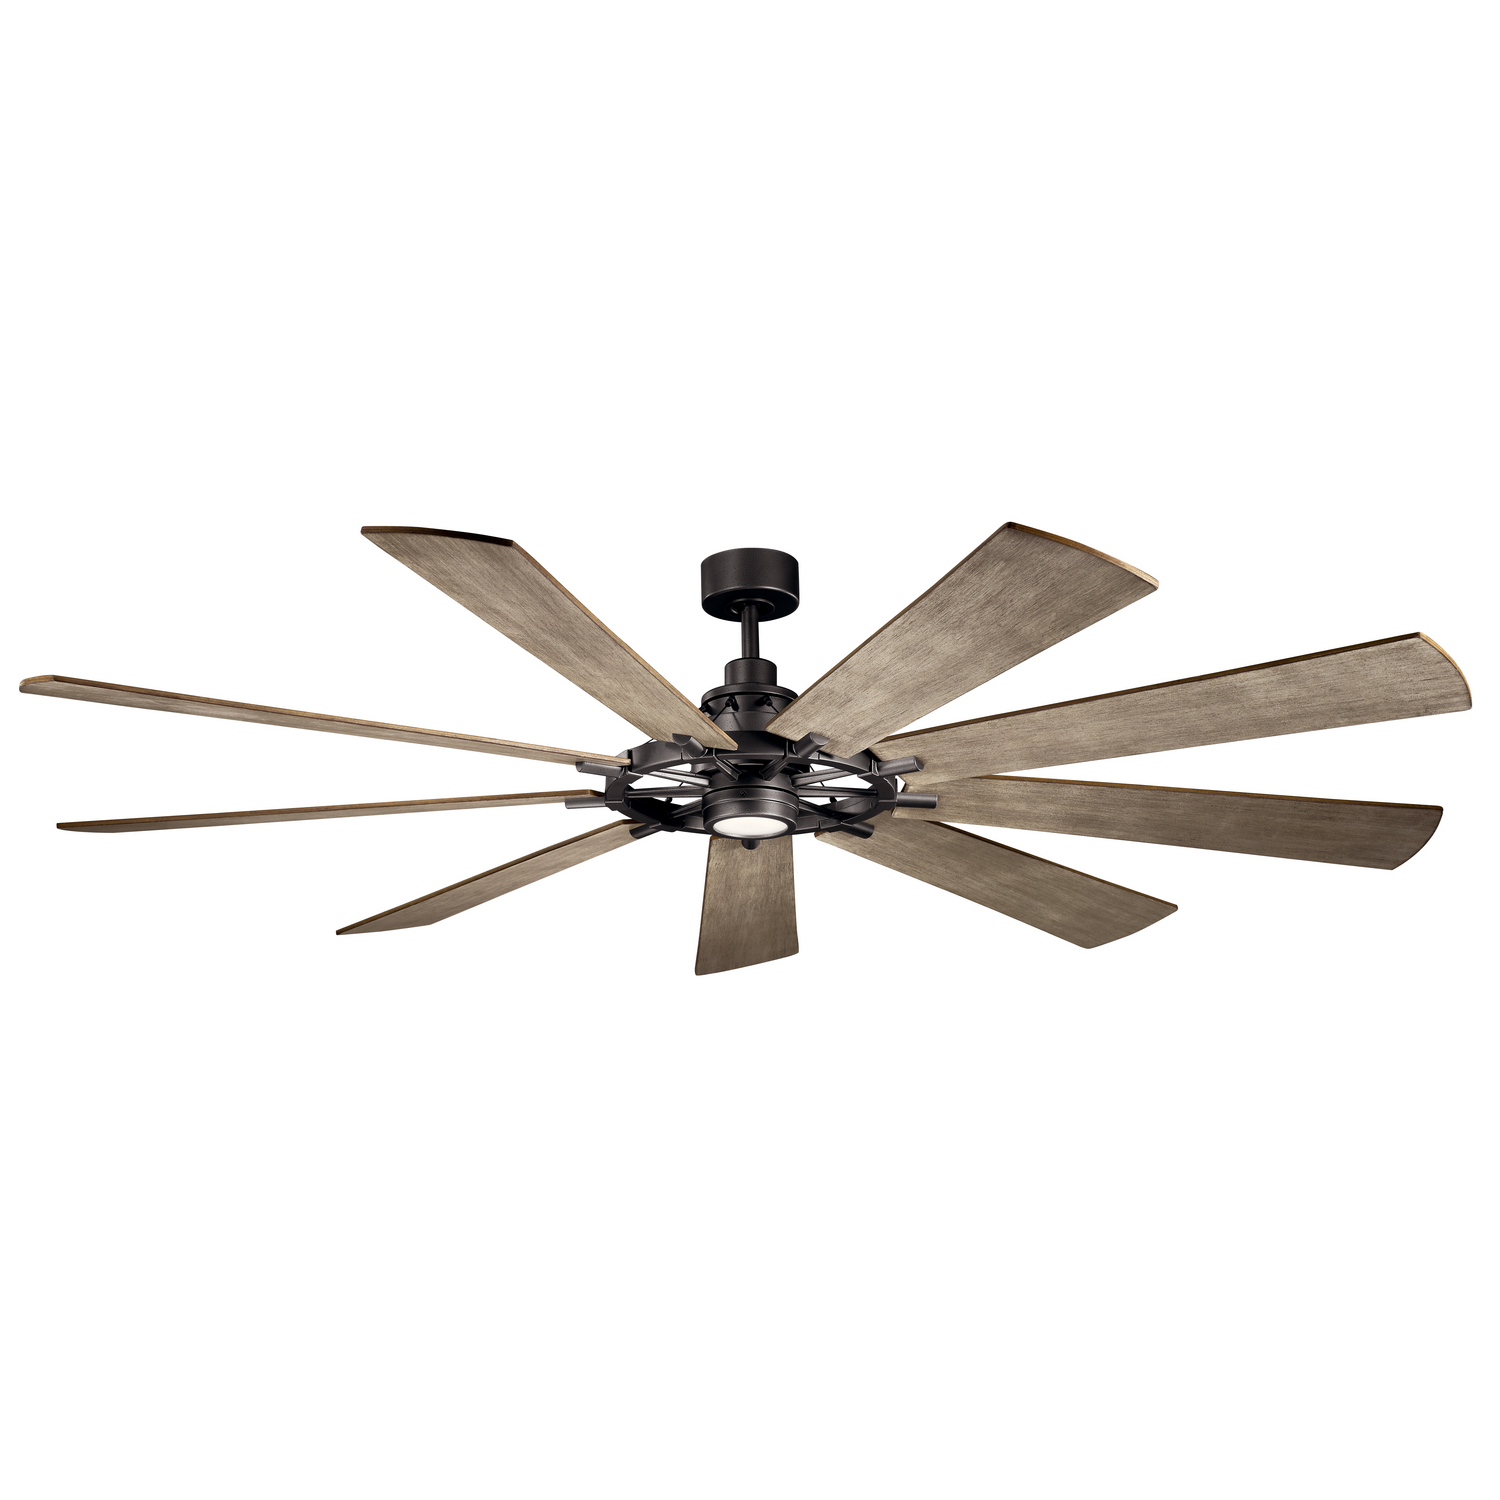 85 inchCeiling Fan from the XL collection by Kichler 300285AVI